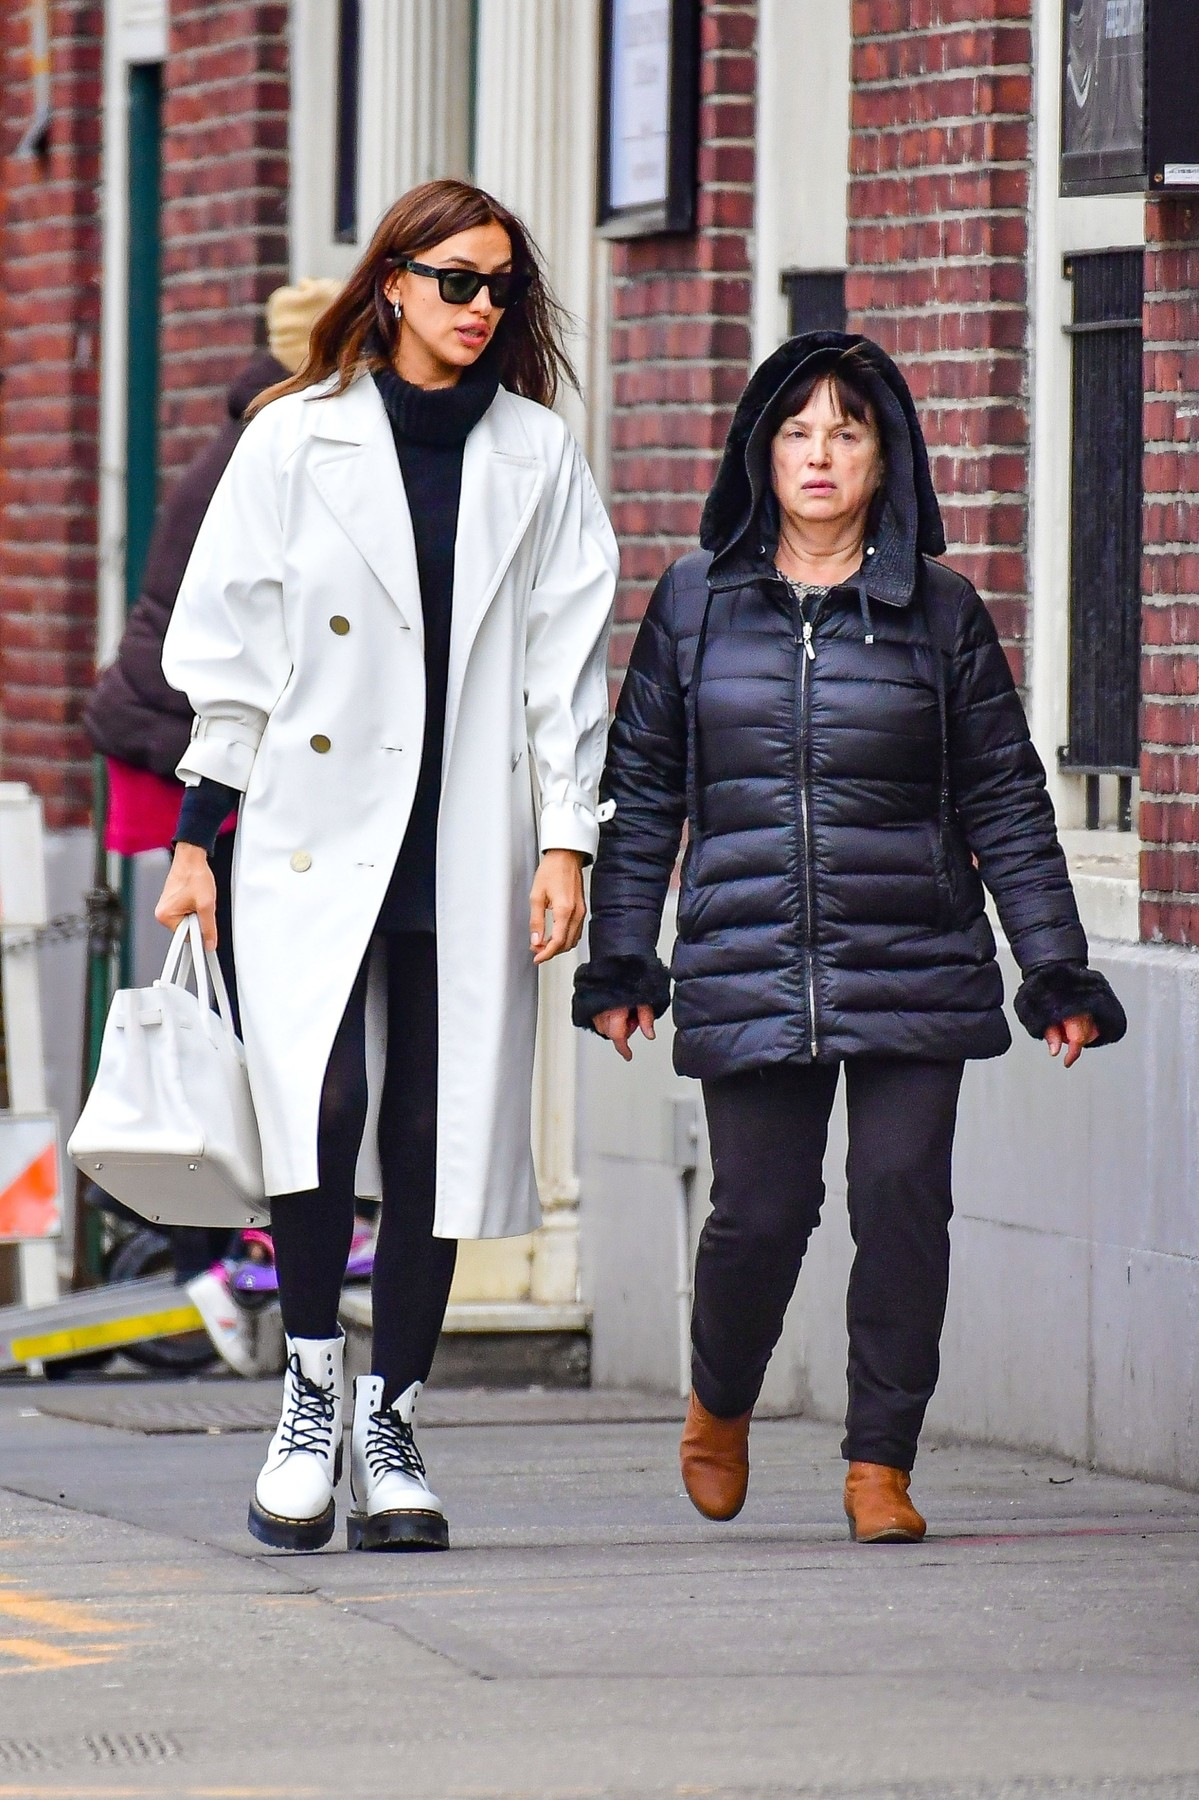 New York, Ny  - *EXCLUSIVE*  - Irina Shayk looks happy while shopping with her mother Olga Shaykhlislamova. Irina stands out in a large white trench coat, black turtleneck, black leggings, and white and black boots.  BACKGRID USA 27 JANUARY 2020, Image: 495079667, License: Rights-managed, Restrictions: RIGHTS: WORLDWIDE EXCEPT IN FRANCE, GERMANY, POLAND, Model Release: no, Credit line: Skyler2018 / BACKGRID / Backgrid USA / Profimedia